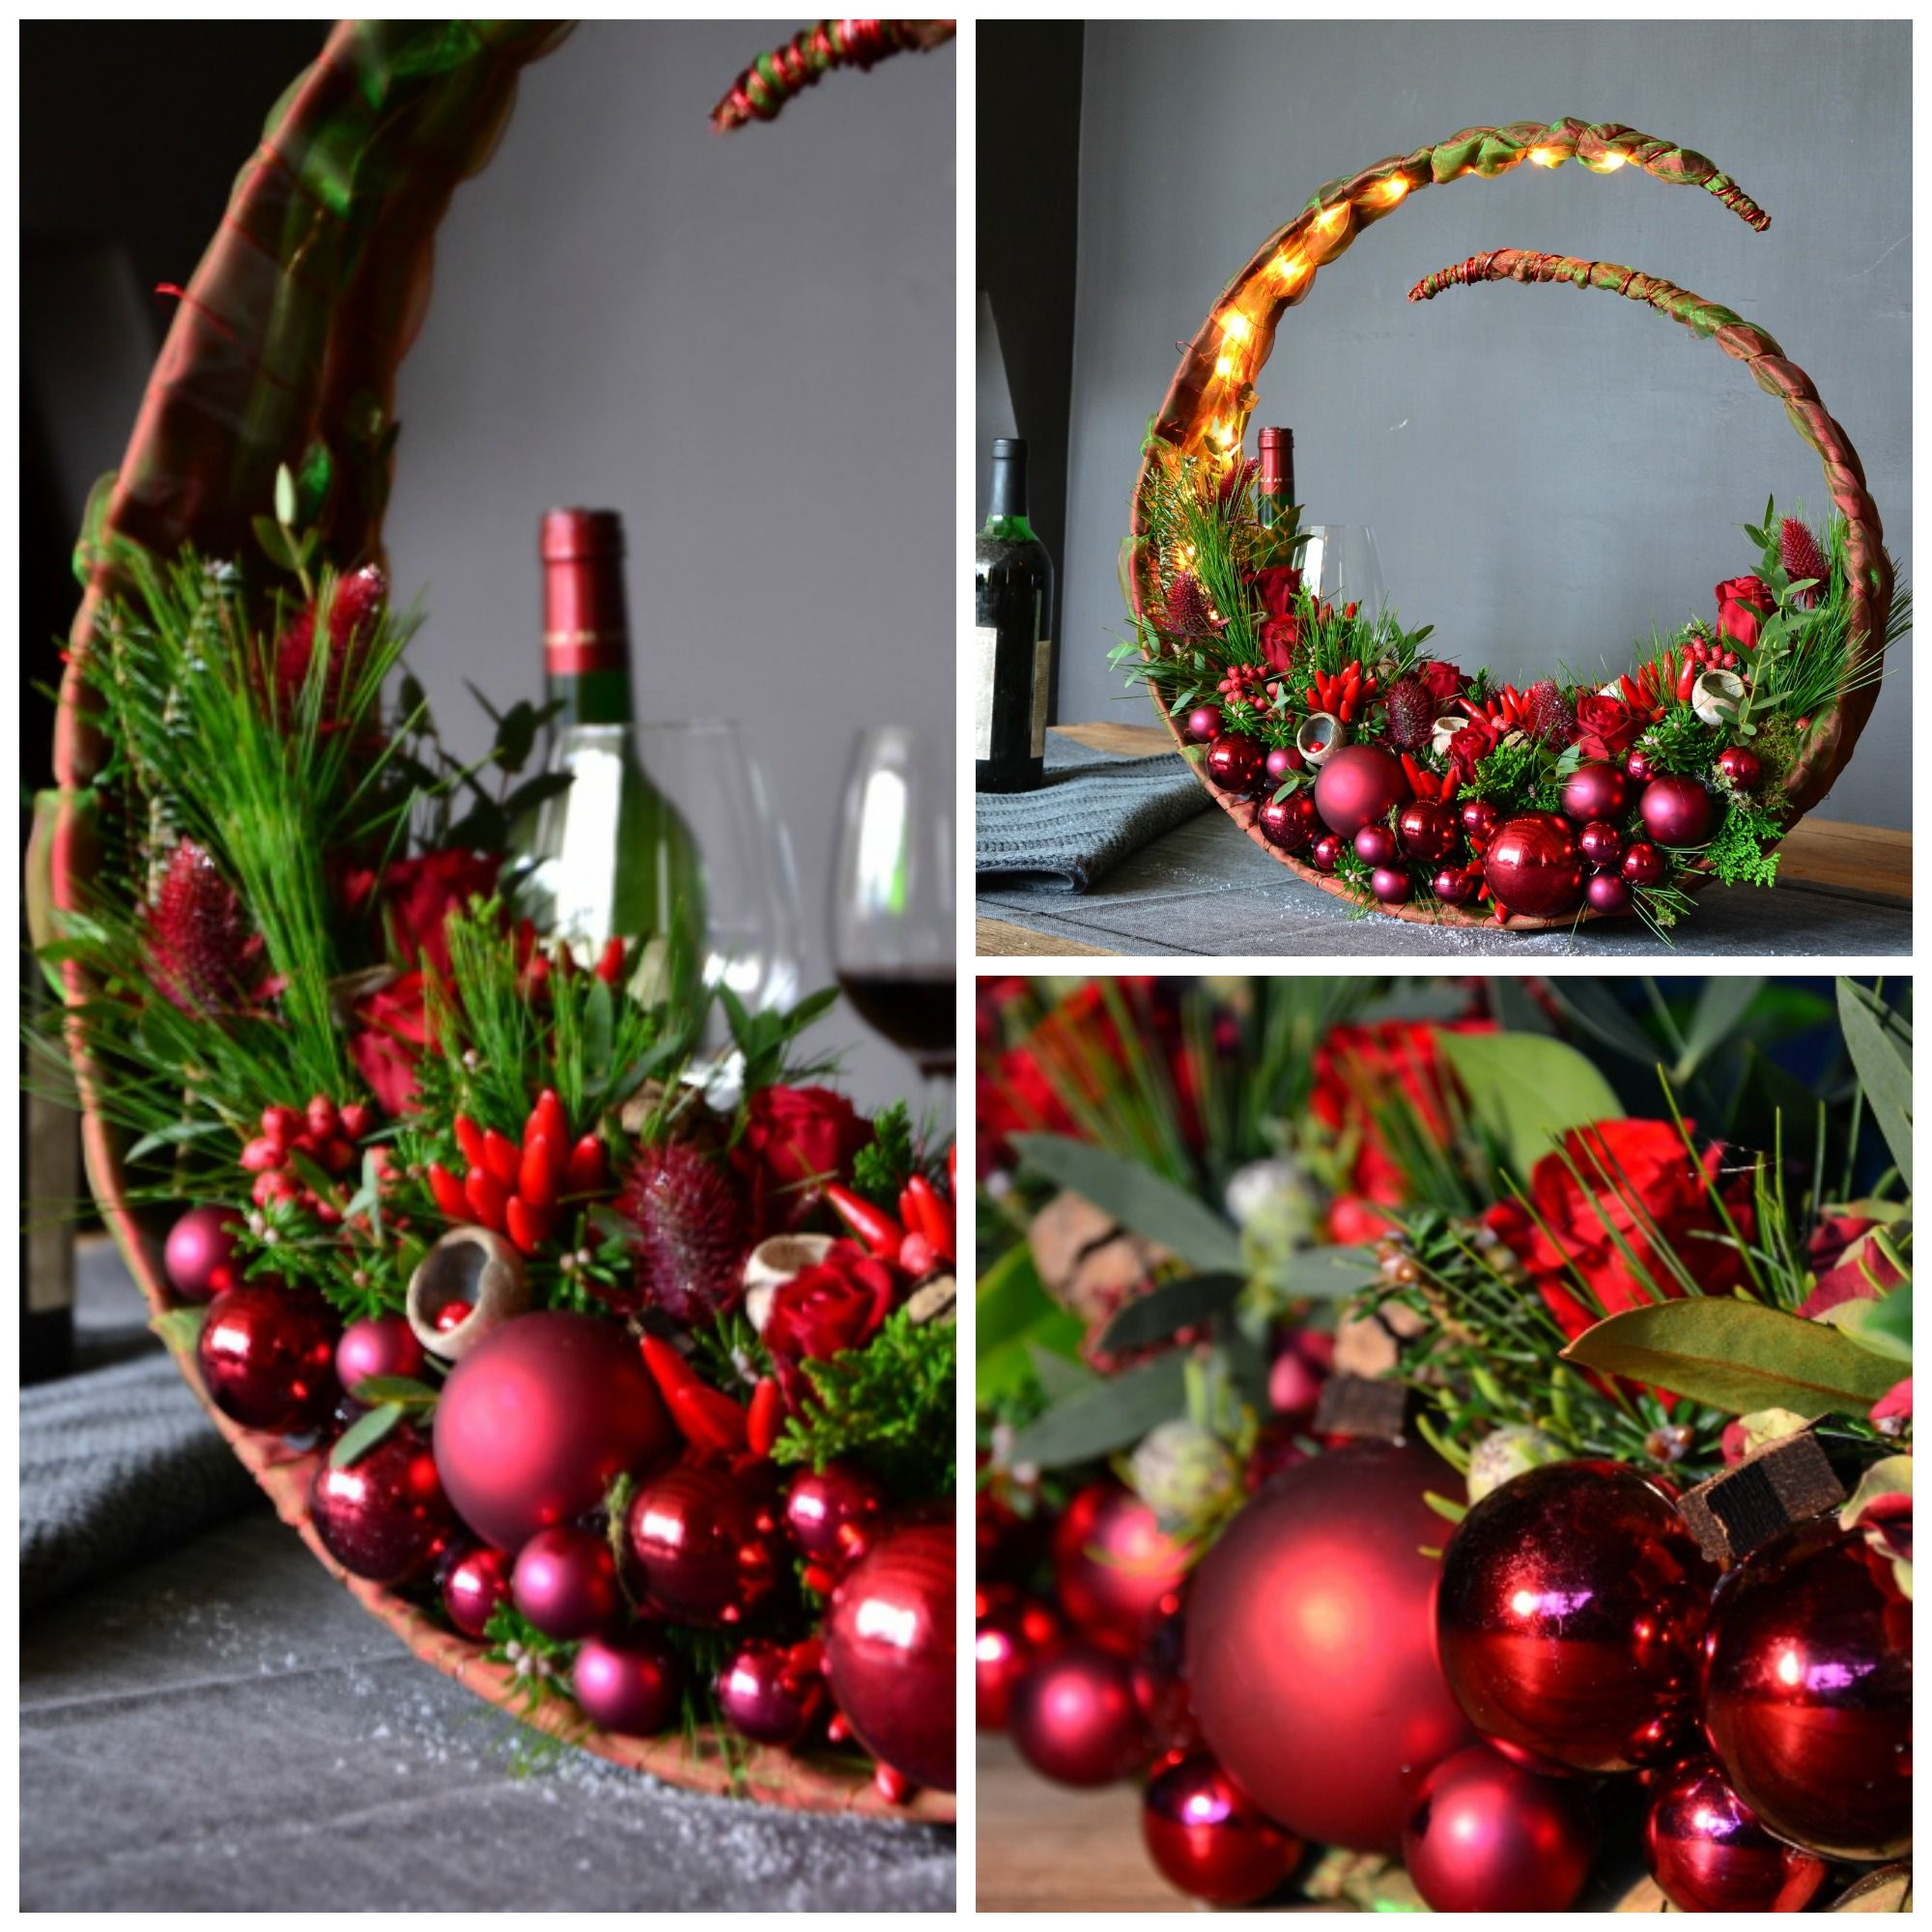 Abstract Contemporary Christmas Floral Design Decoration